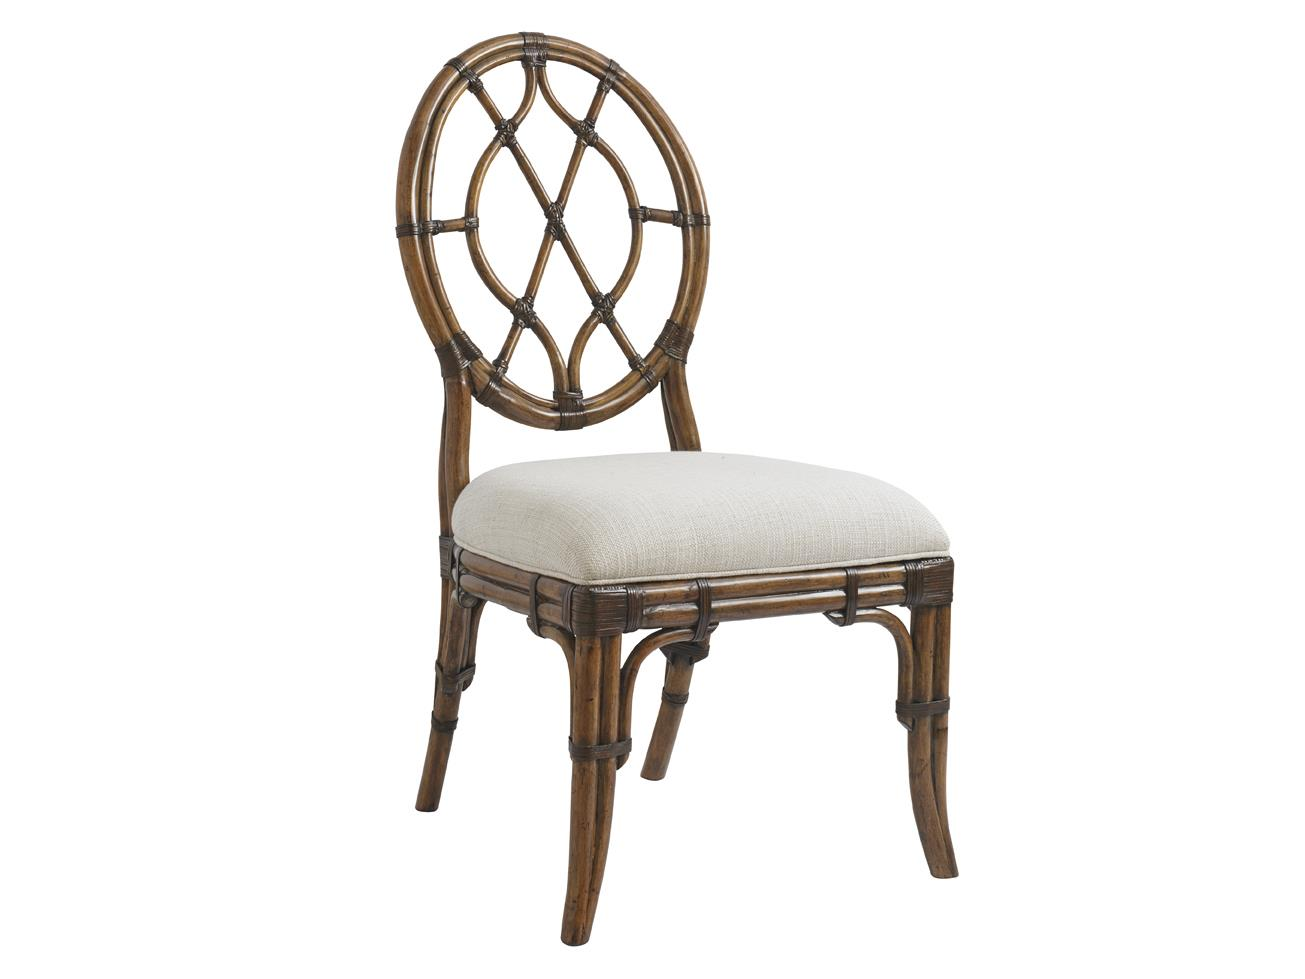 Tommy Bahama Home Bali Hai Quickship Cedar Key Oval Back Side Chair - Item Number: 593-886-01